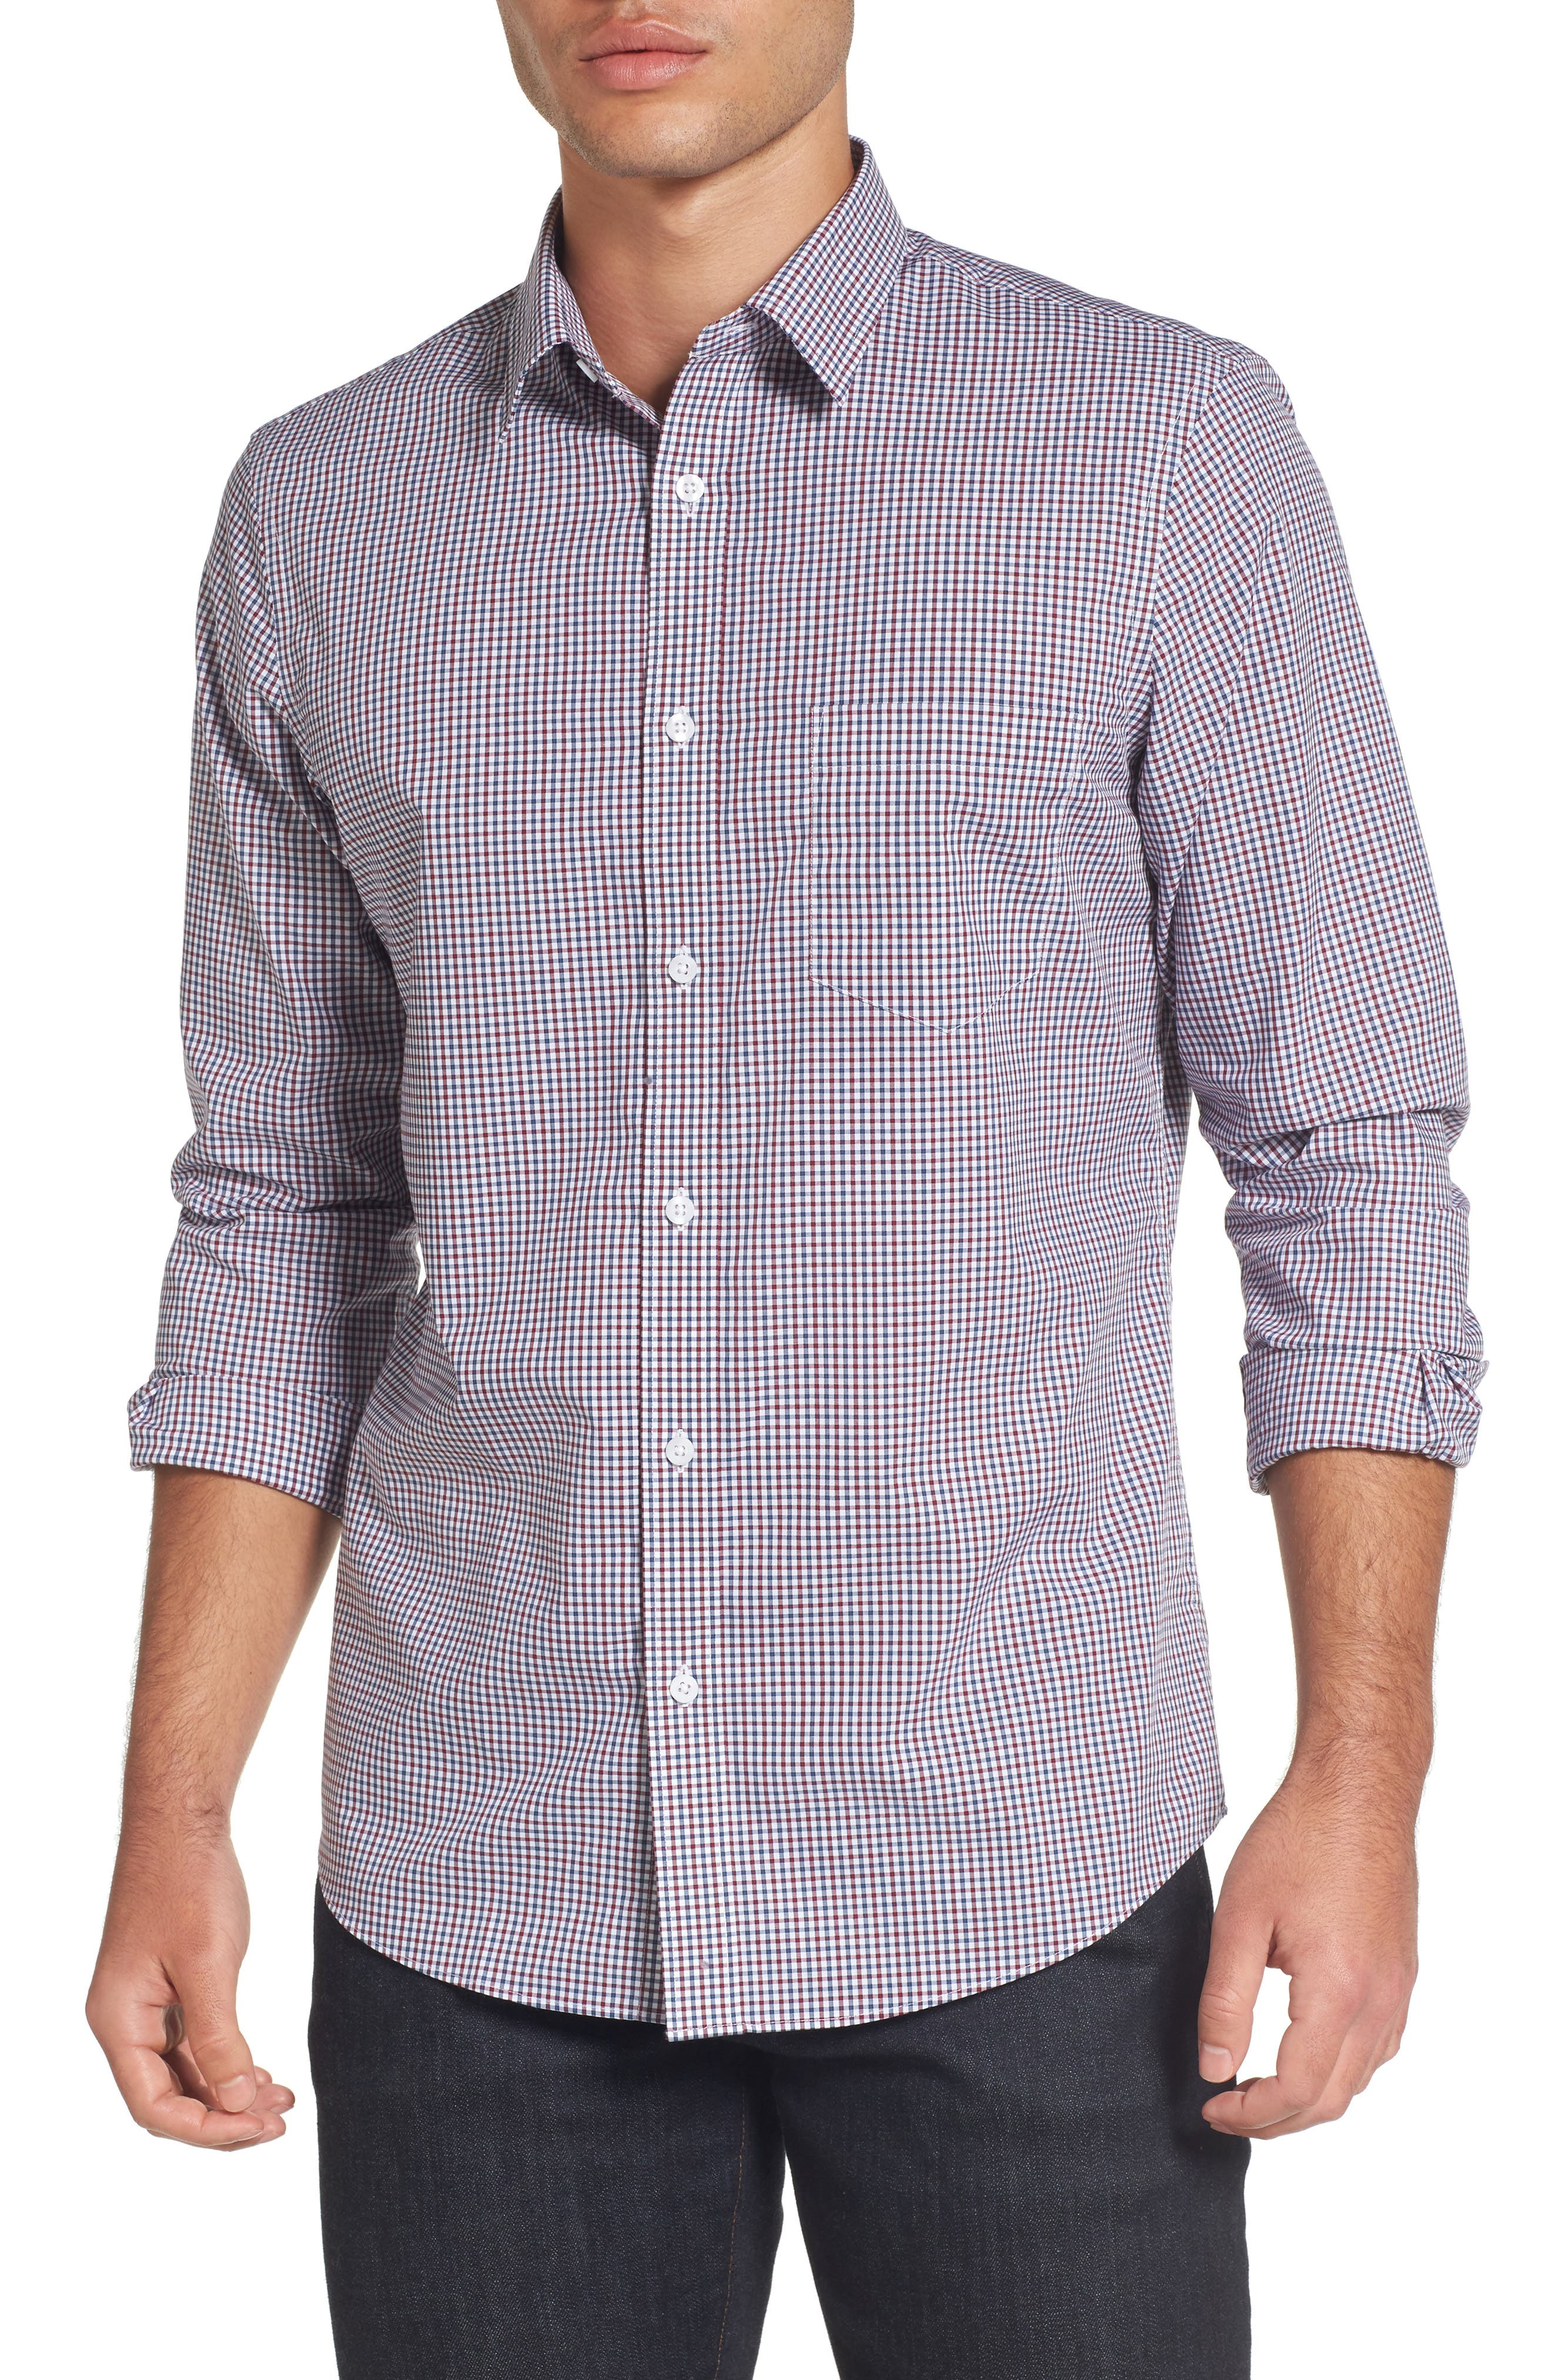 Nordstrom Men's Shop Regular Fit Non-Iron Gingham Check Sport Shirt (Regular & Tall)